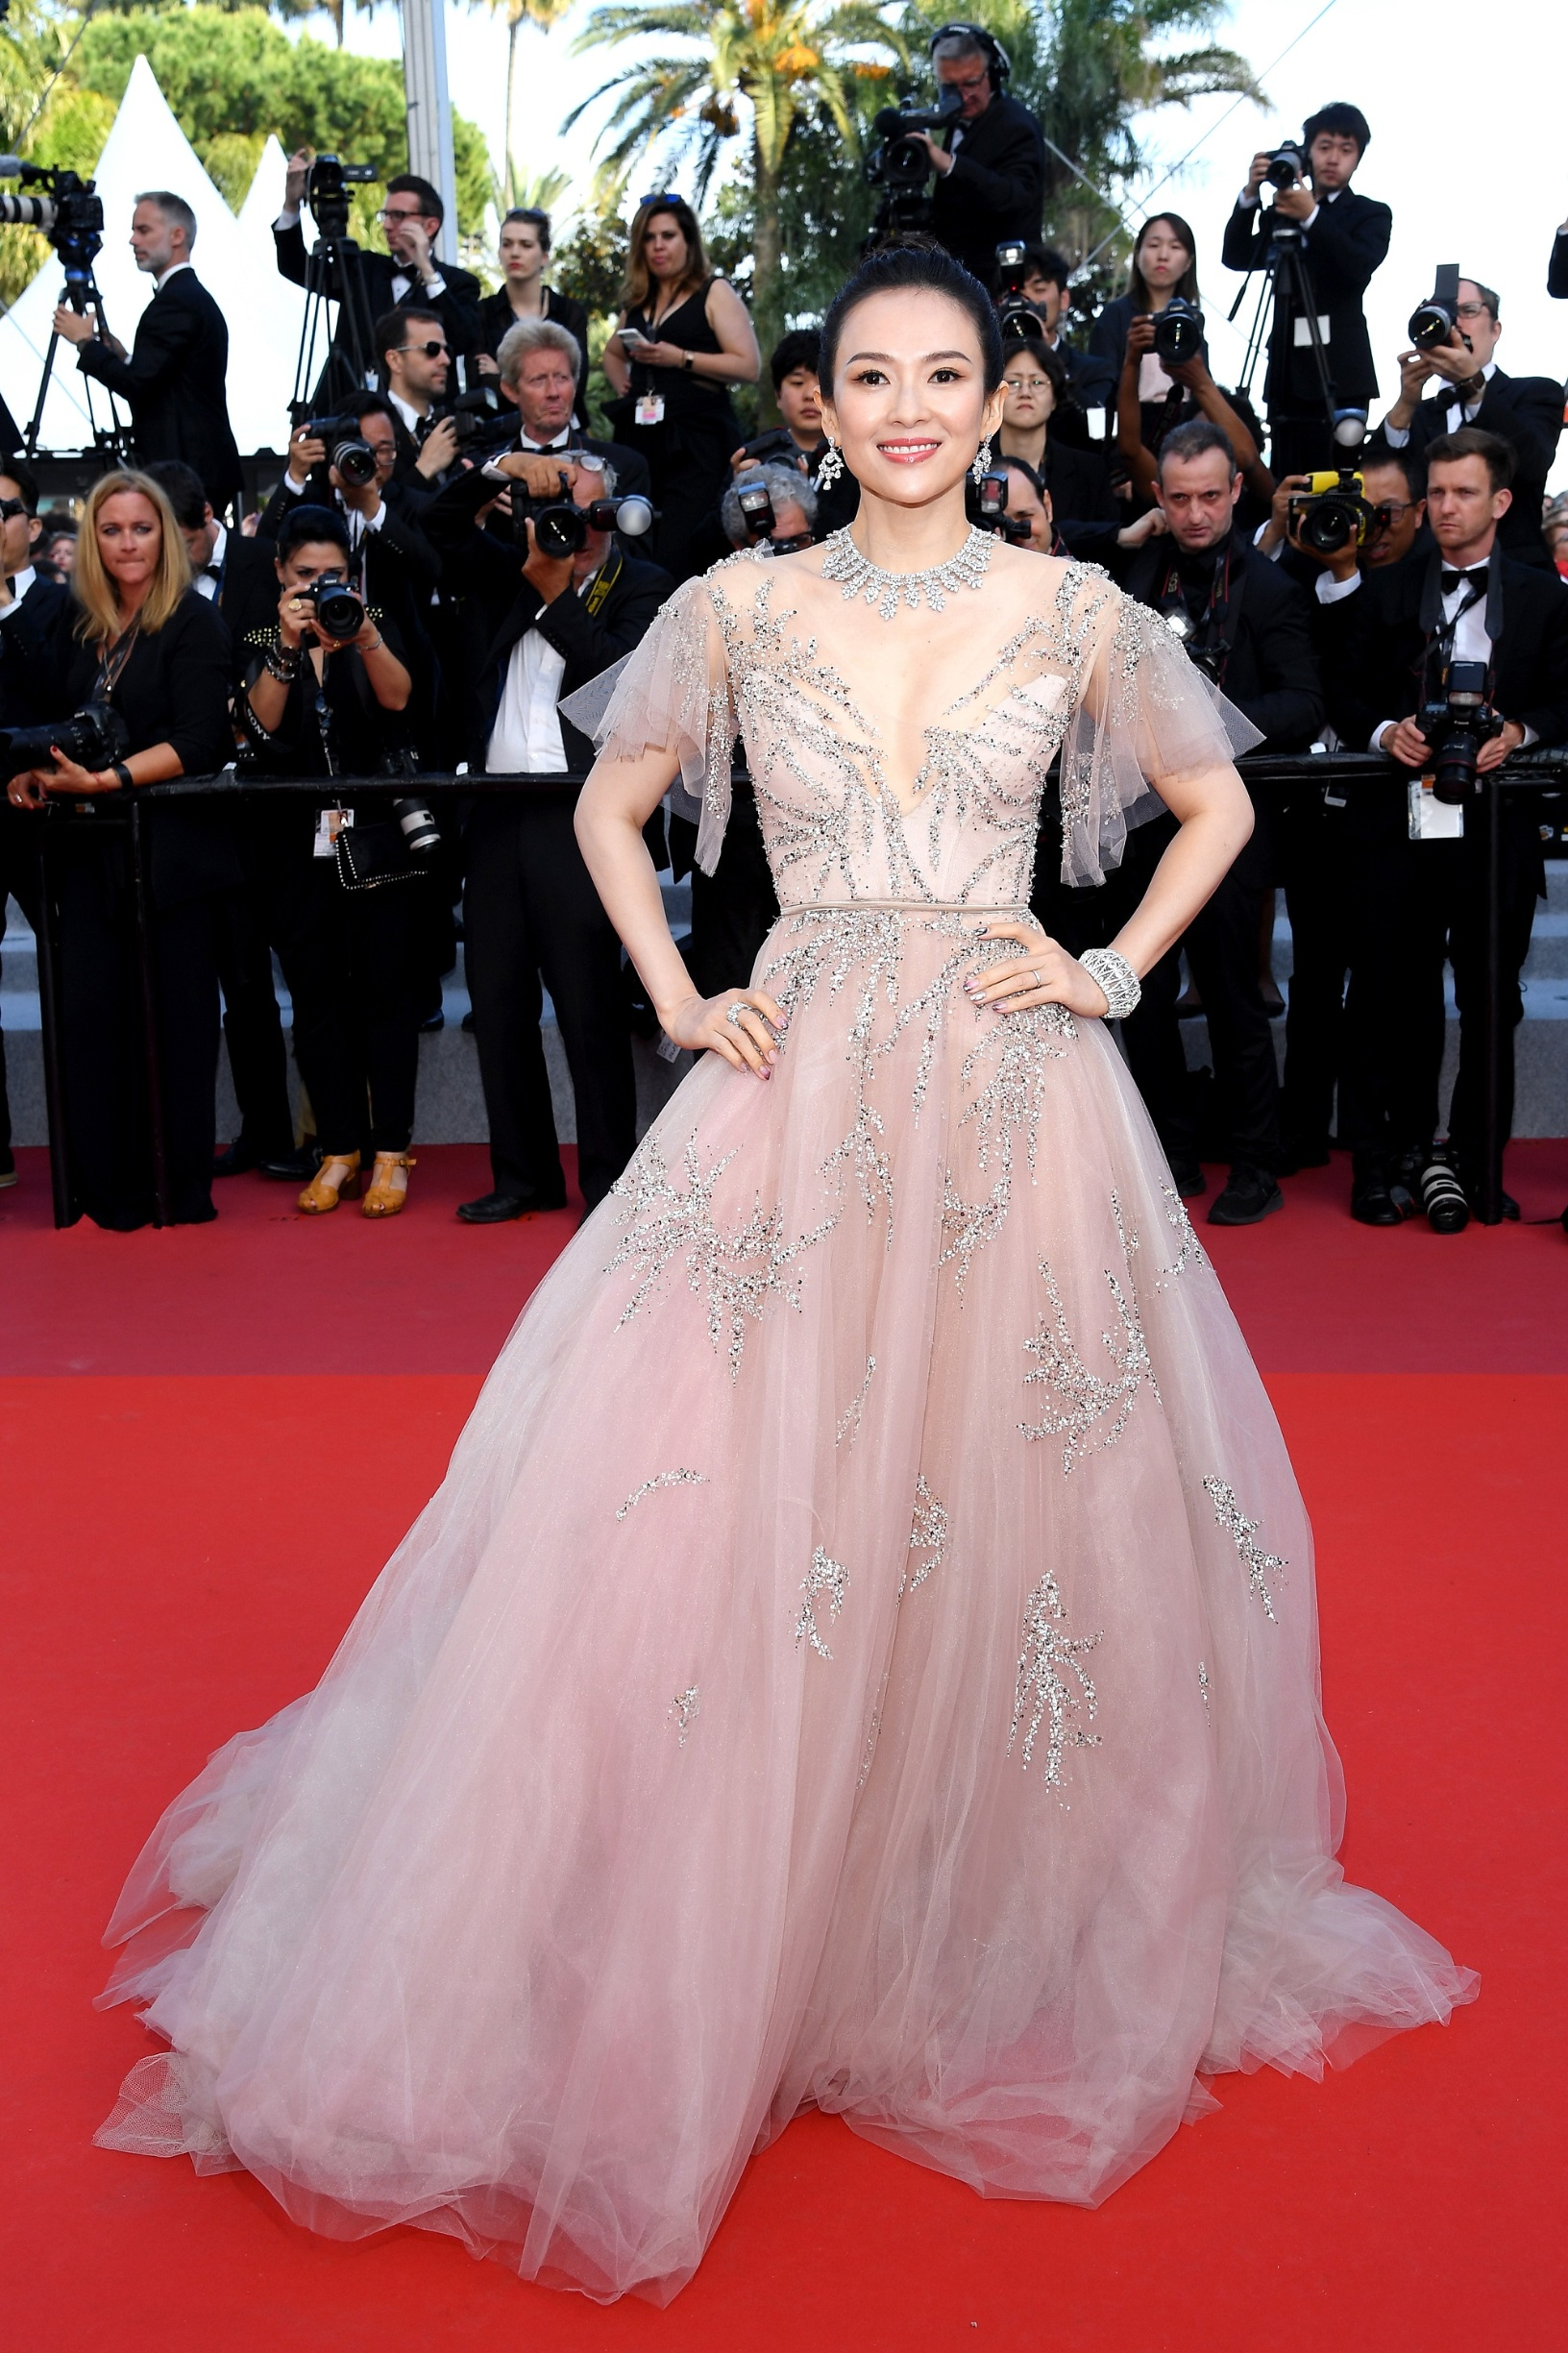 CANNES, FRANCE - MAY 25: Zhang Ziyi attends the closing ceremony screening of